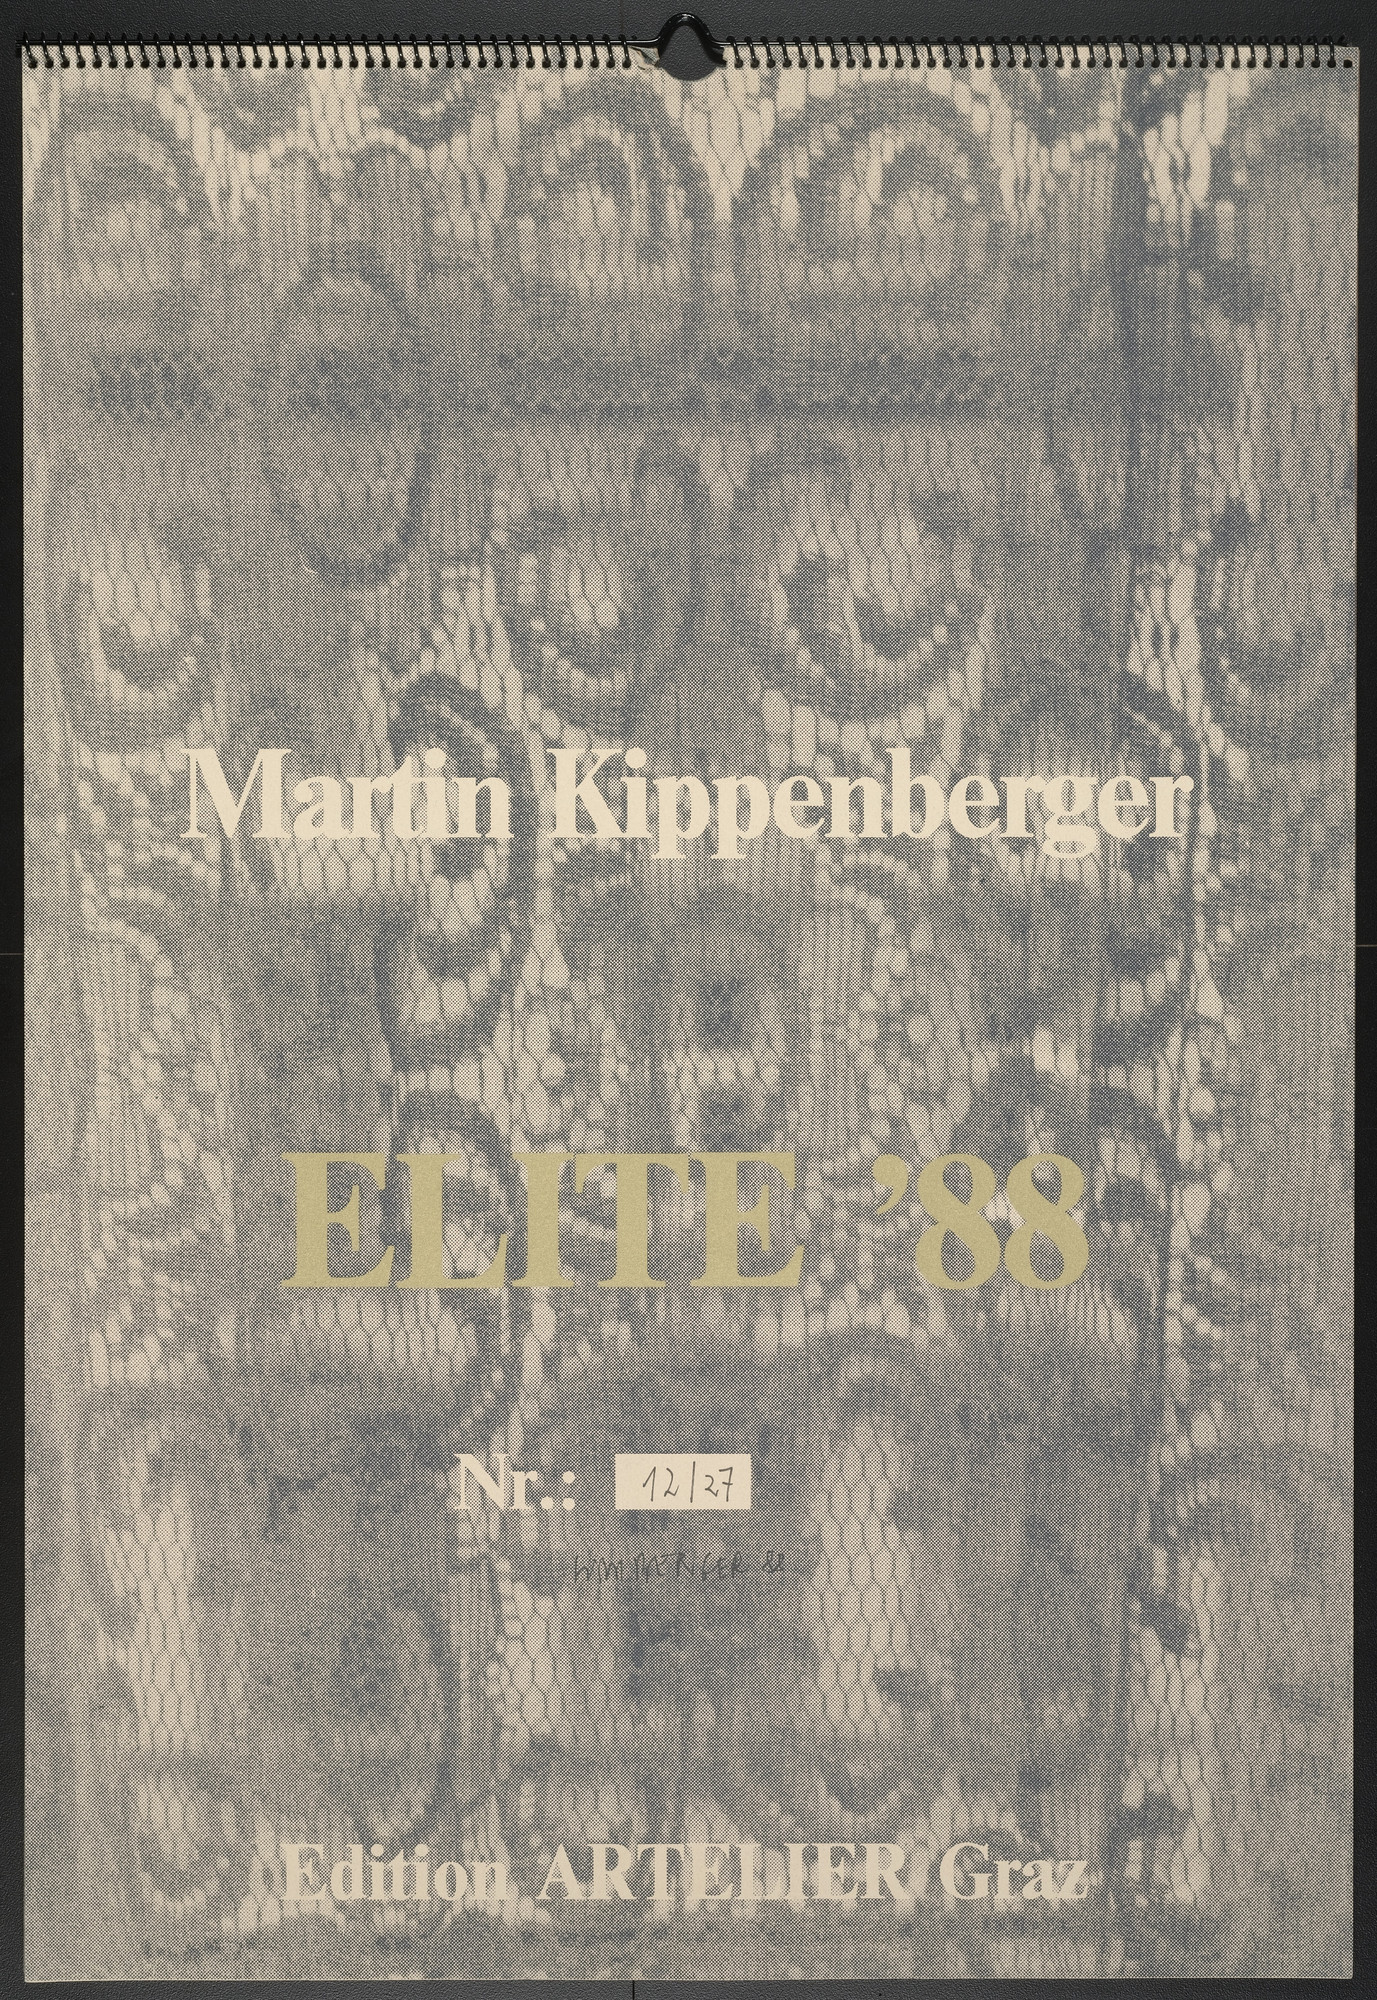 Martin Kippenberger. Title page from Elite '88. 1988